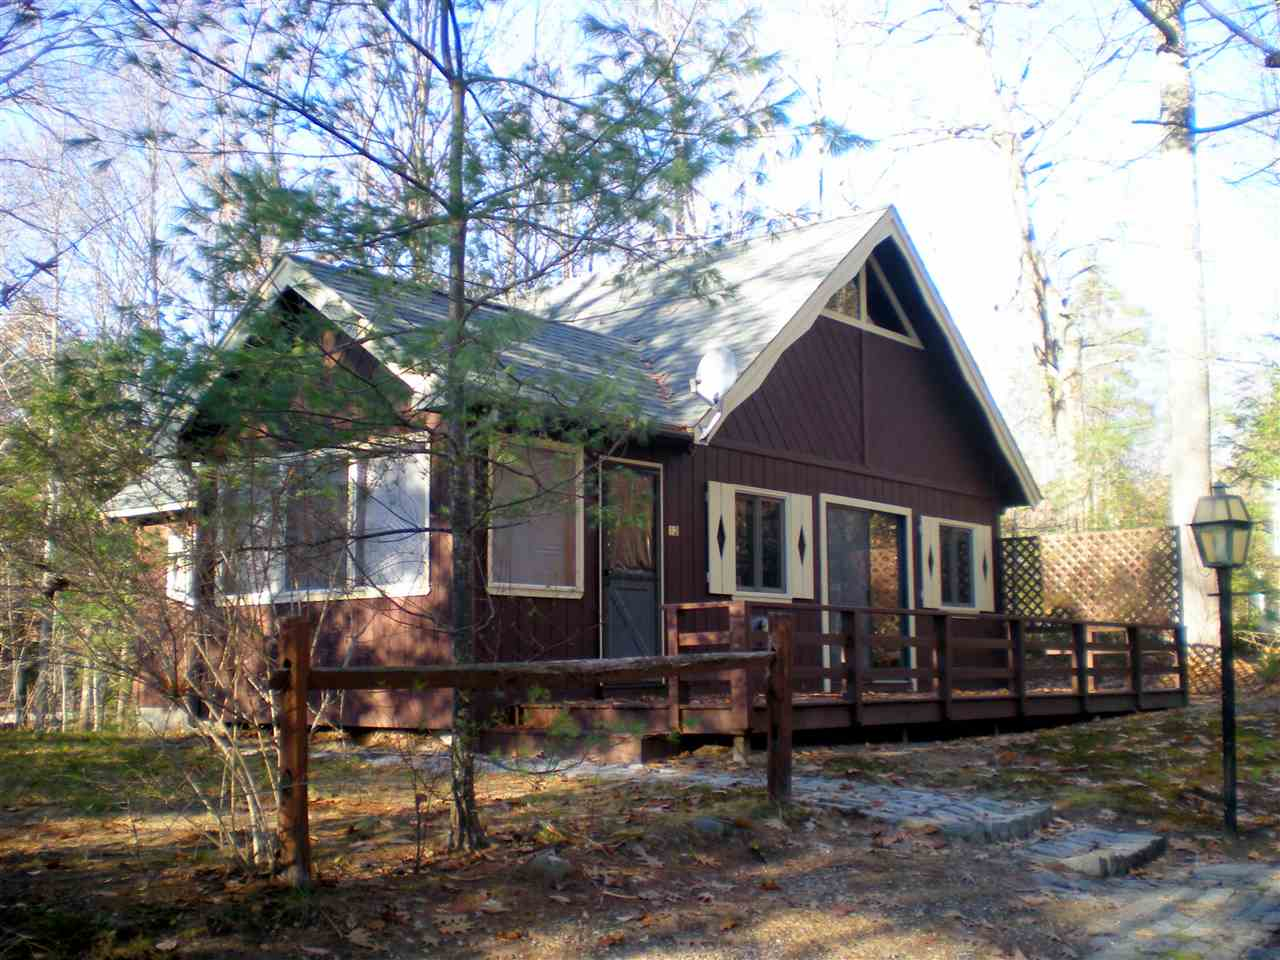 Your home for vacation amp prosperity - 12 Normas Lane Wolfeboro Nh 03894